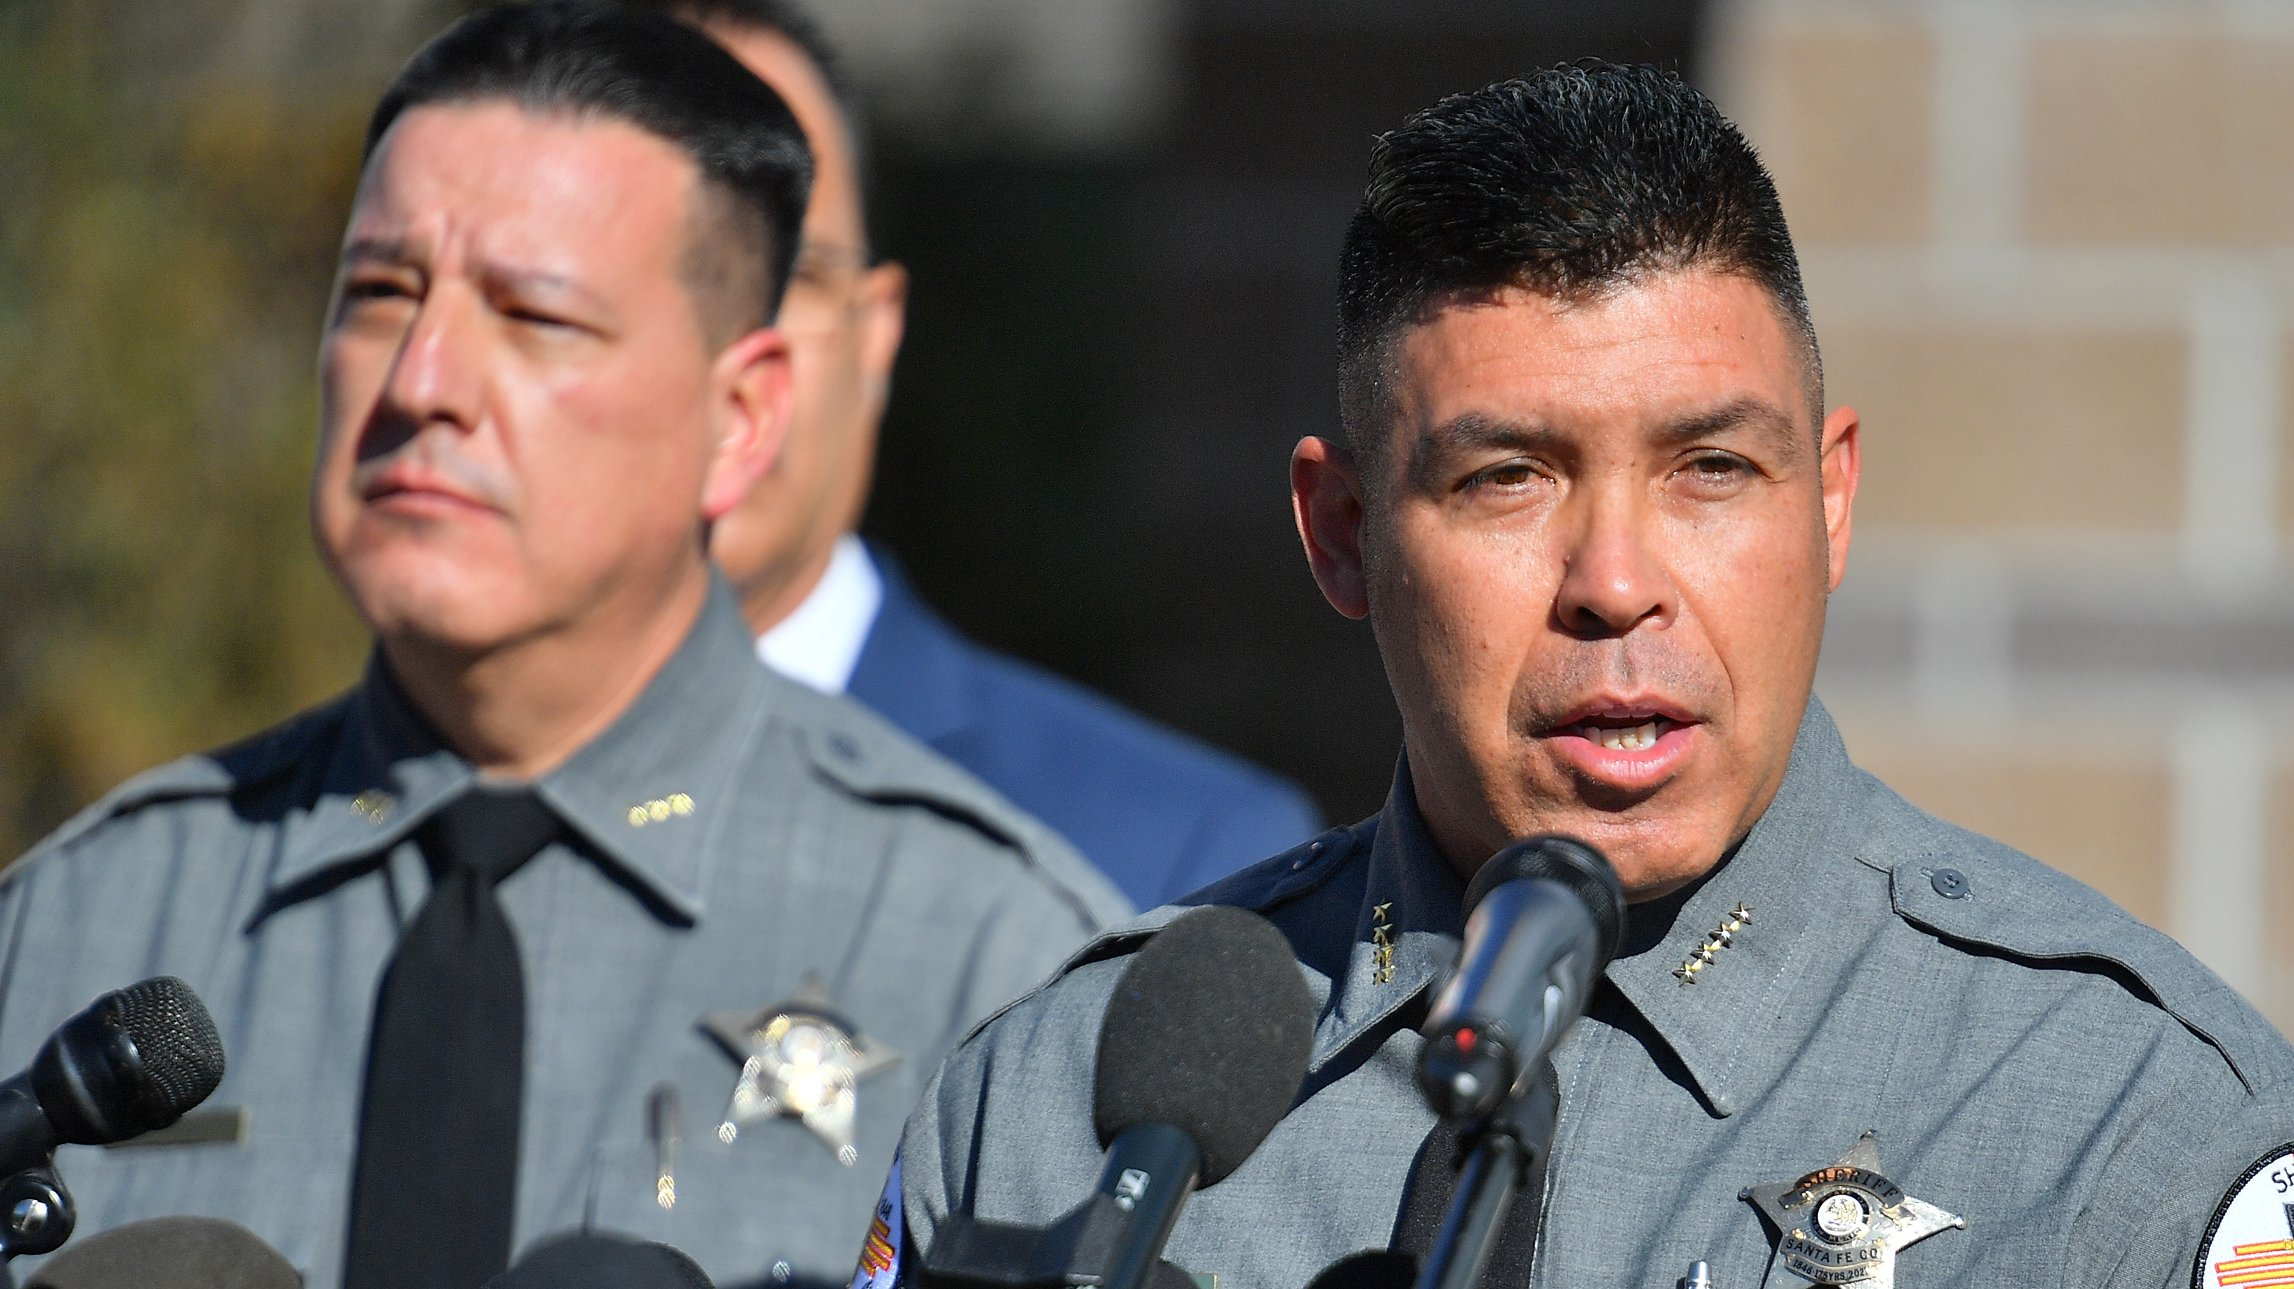 """Santa Fe County Sheriff's Office Holds Press Conference Regarding """"Rust"""" On Set Shooting Accident With Alec Baldwin"""